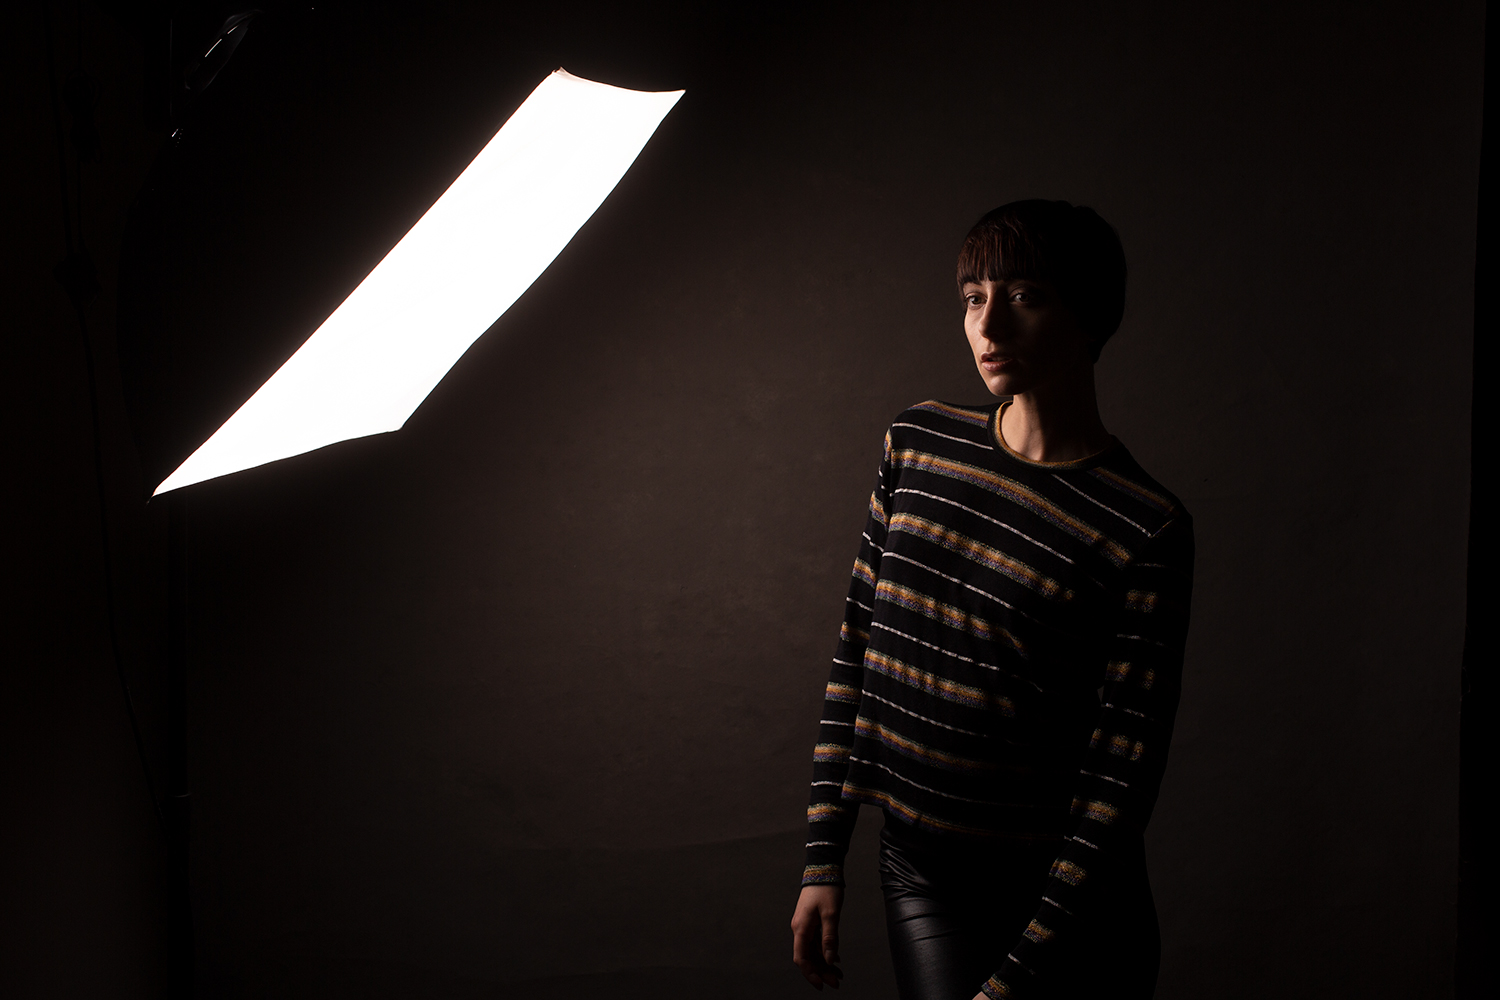 Image: Short lighting is trickier to set up than broad, but take your time and be deliberate in wher...